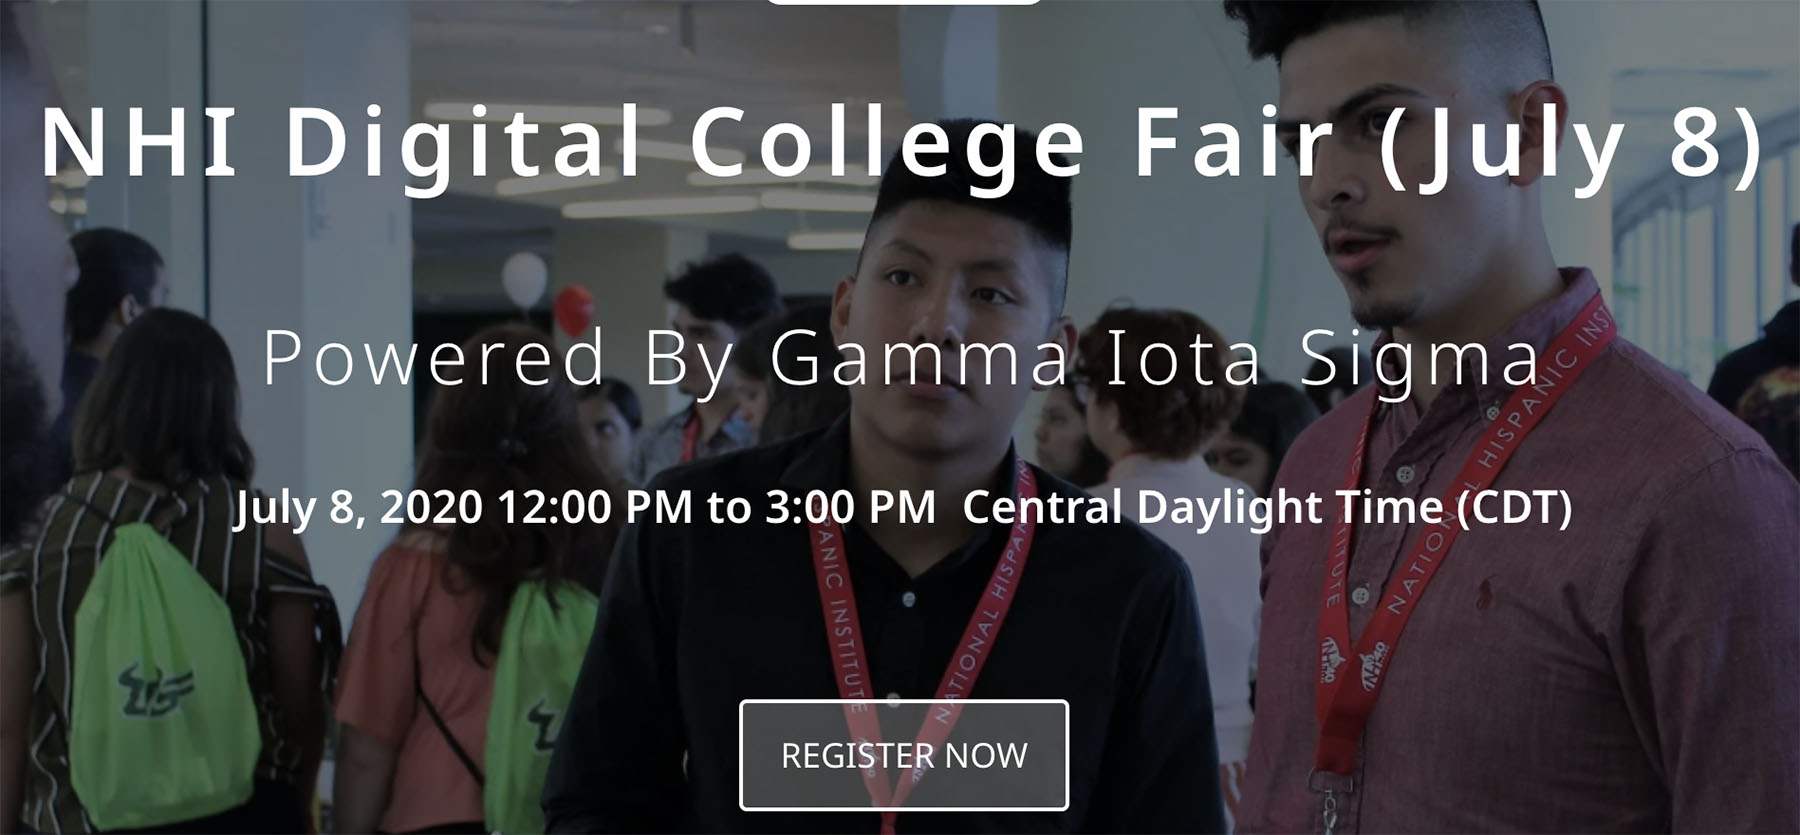 NHI Digital College Fair